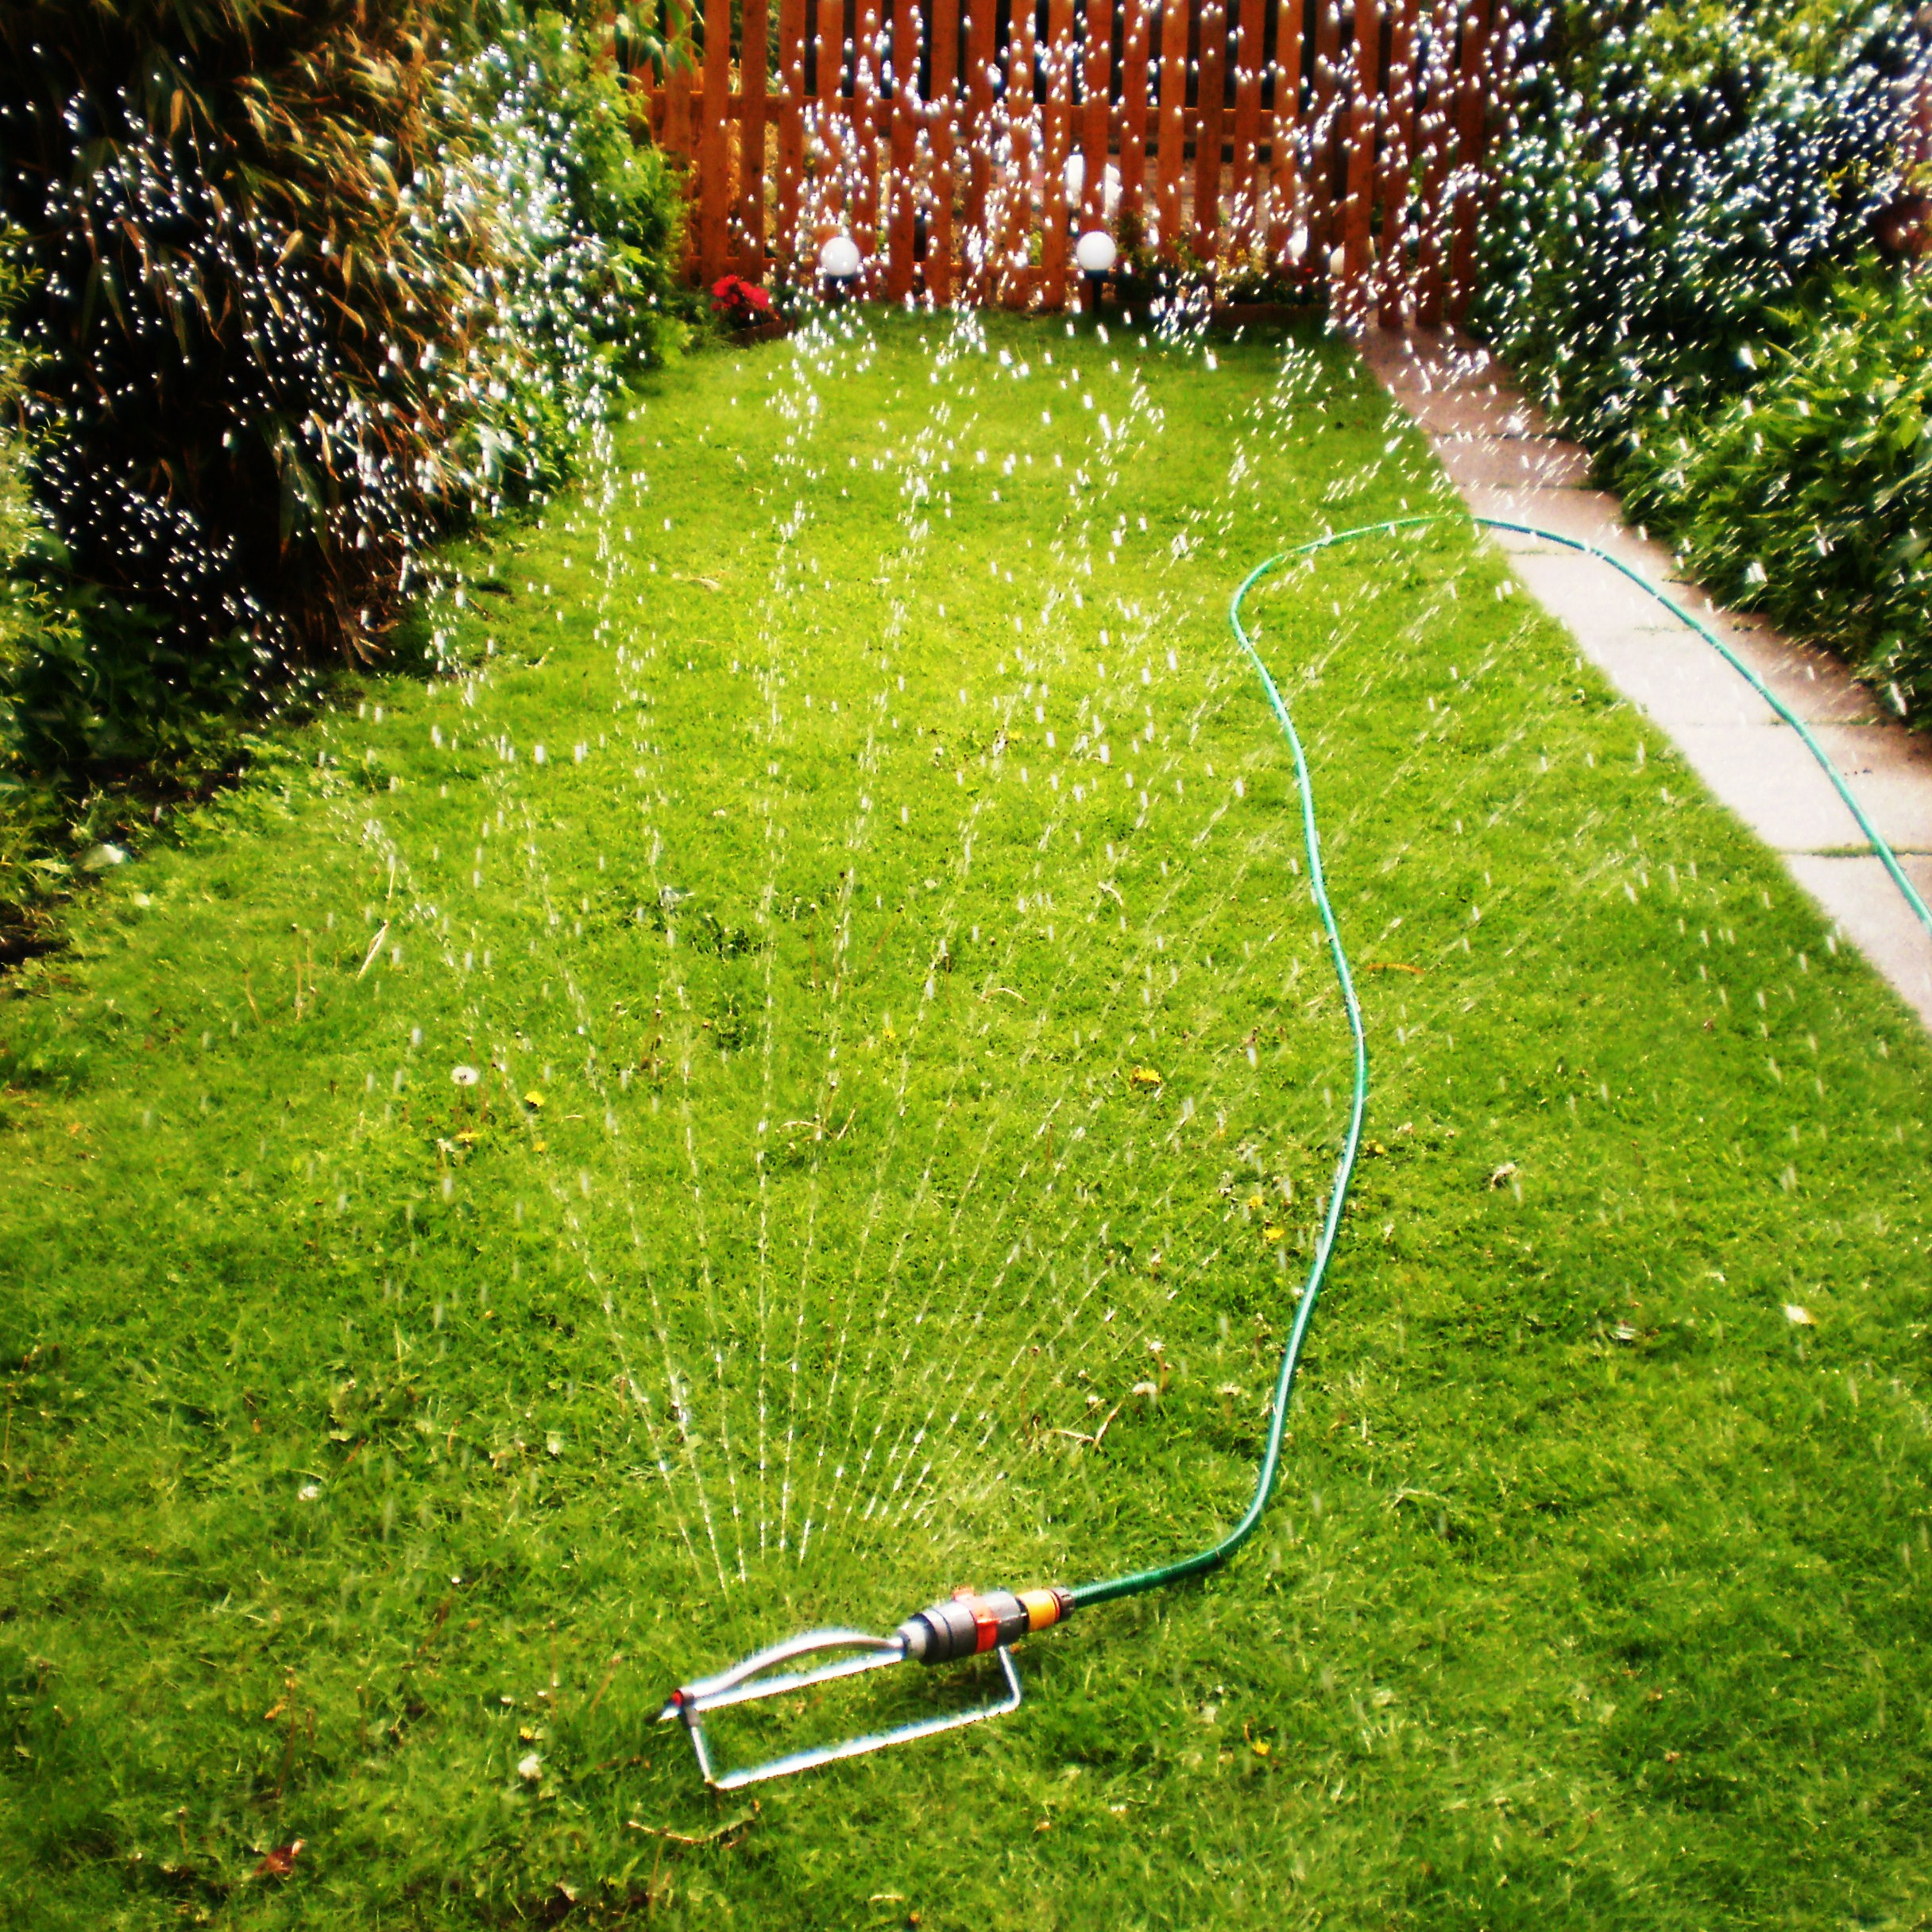 Best Lawn Sprinkler Oscillating Rotary Stationary Or